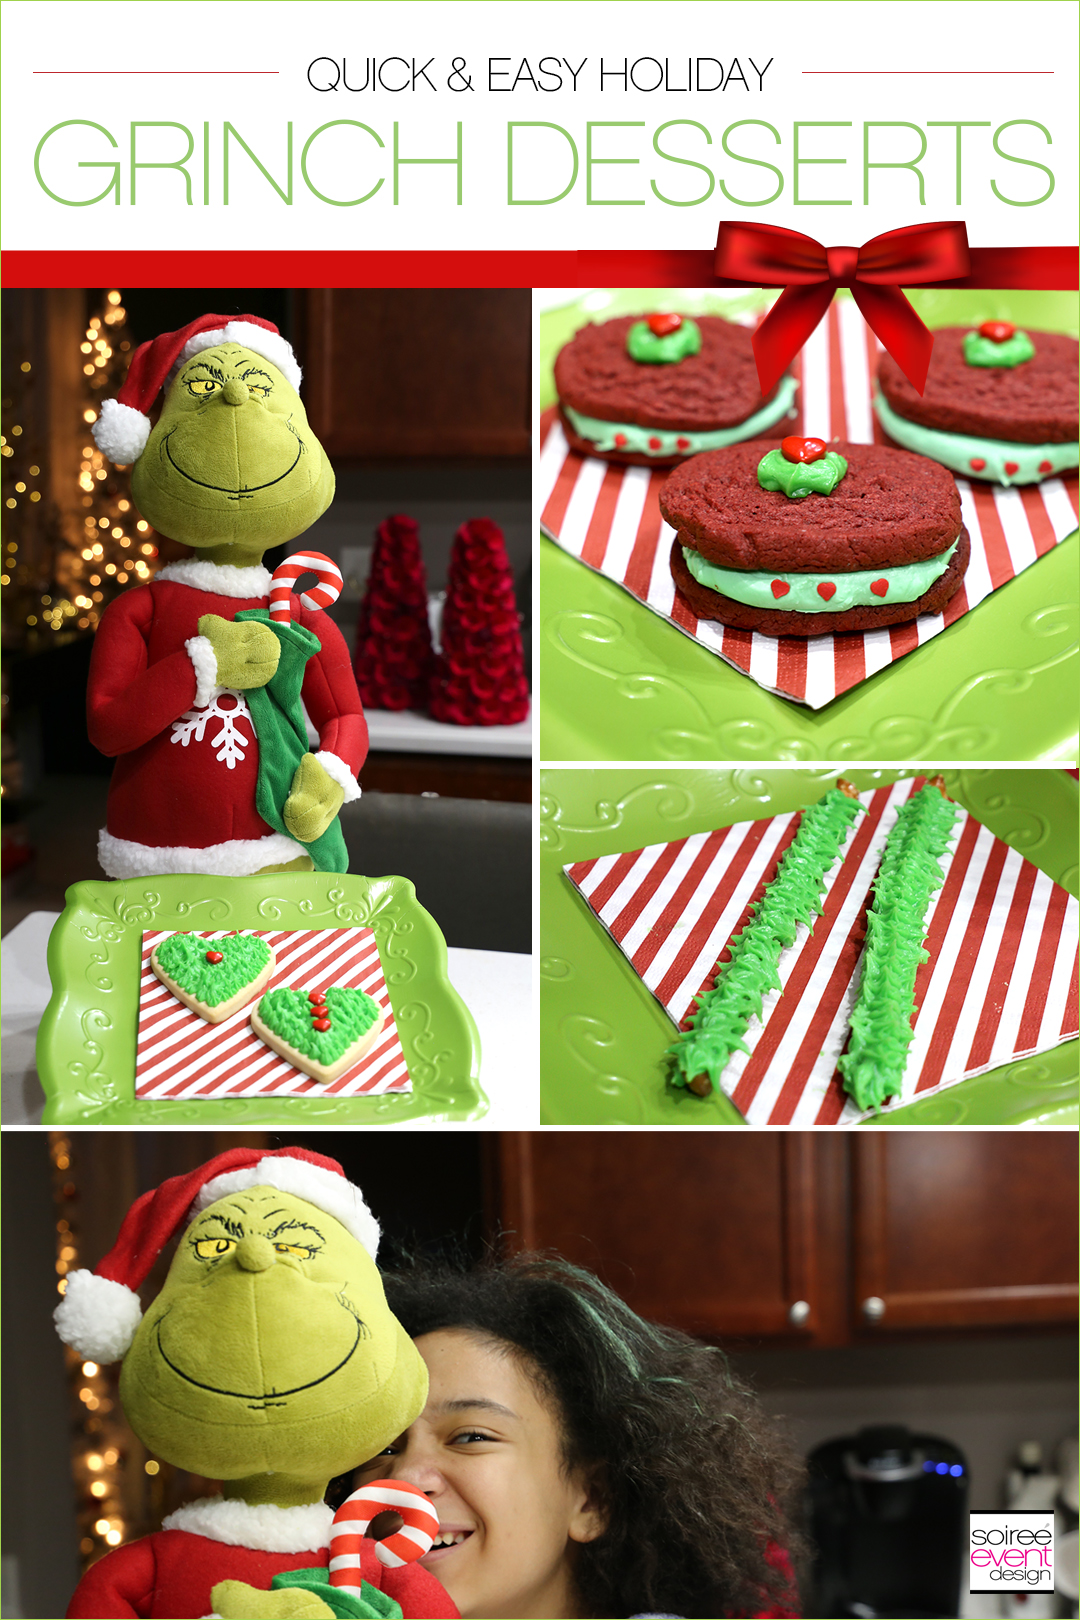 Grinch Dessert Ideas - Grinch Holiday Desserts